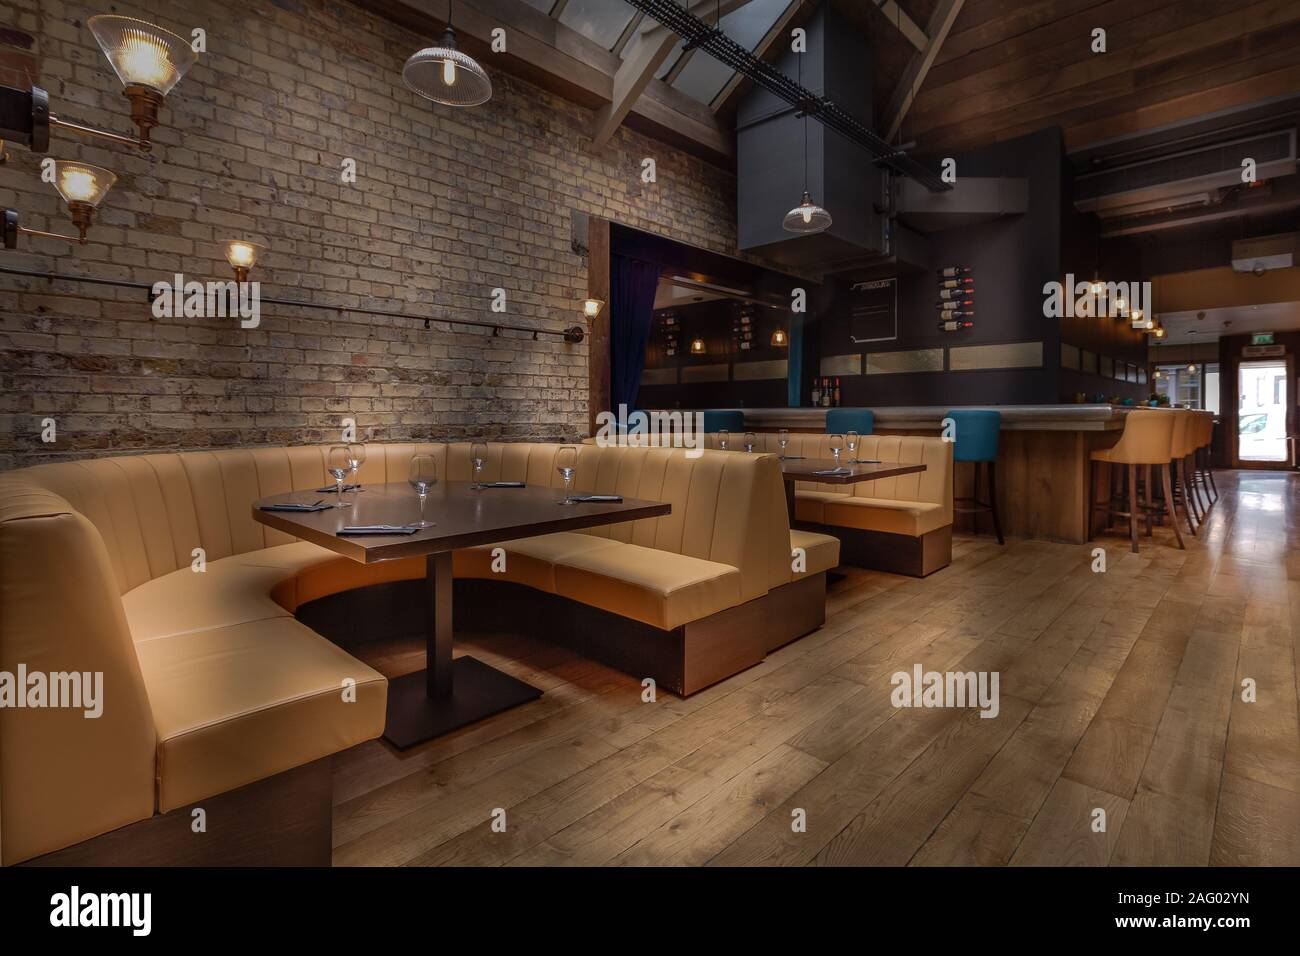 Cozy Wooden Interior Of Restaurant Copy Space Comfortable Modern And Discrete Dining Place Contemporary Design Background Stock Photo Alamy